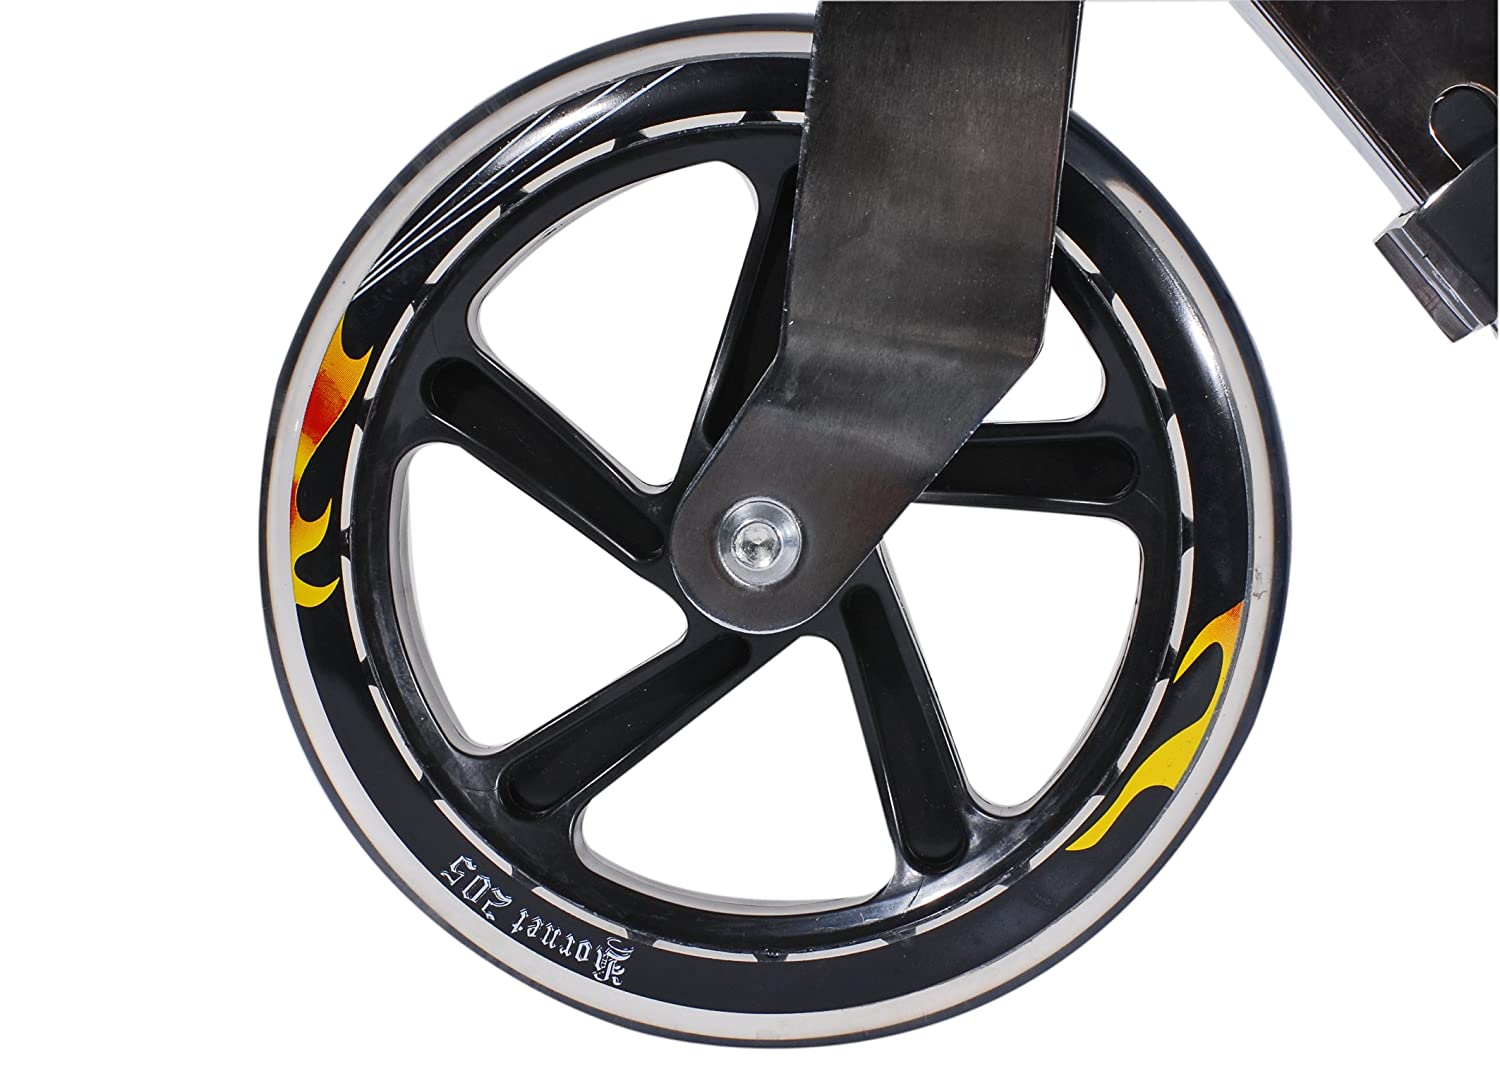 Hudora 14680 Hornet Top Wheel 205 - Patinete con Ruedas de ...